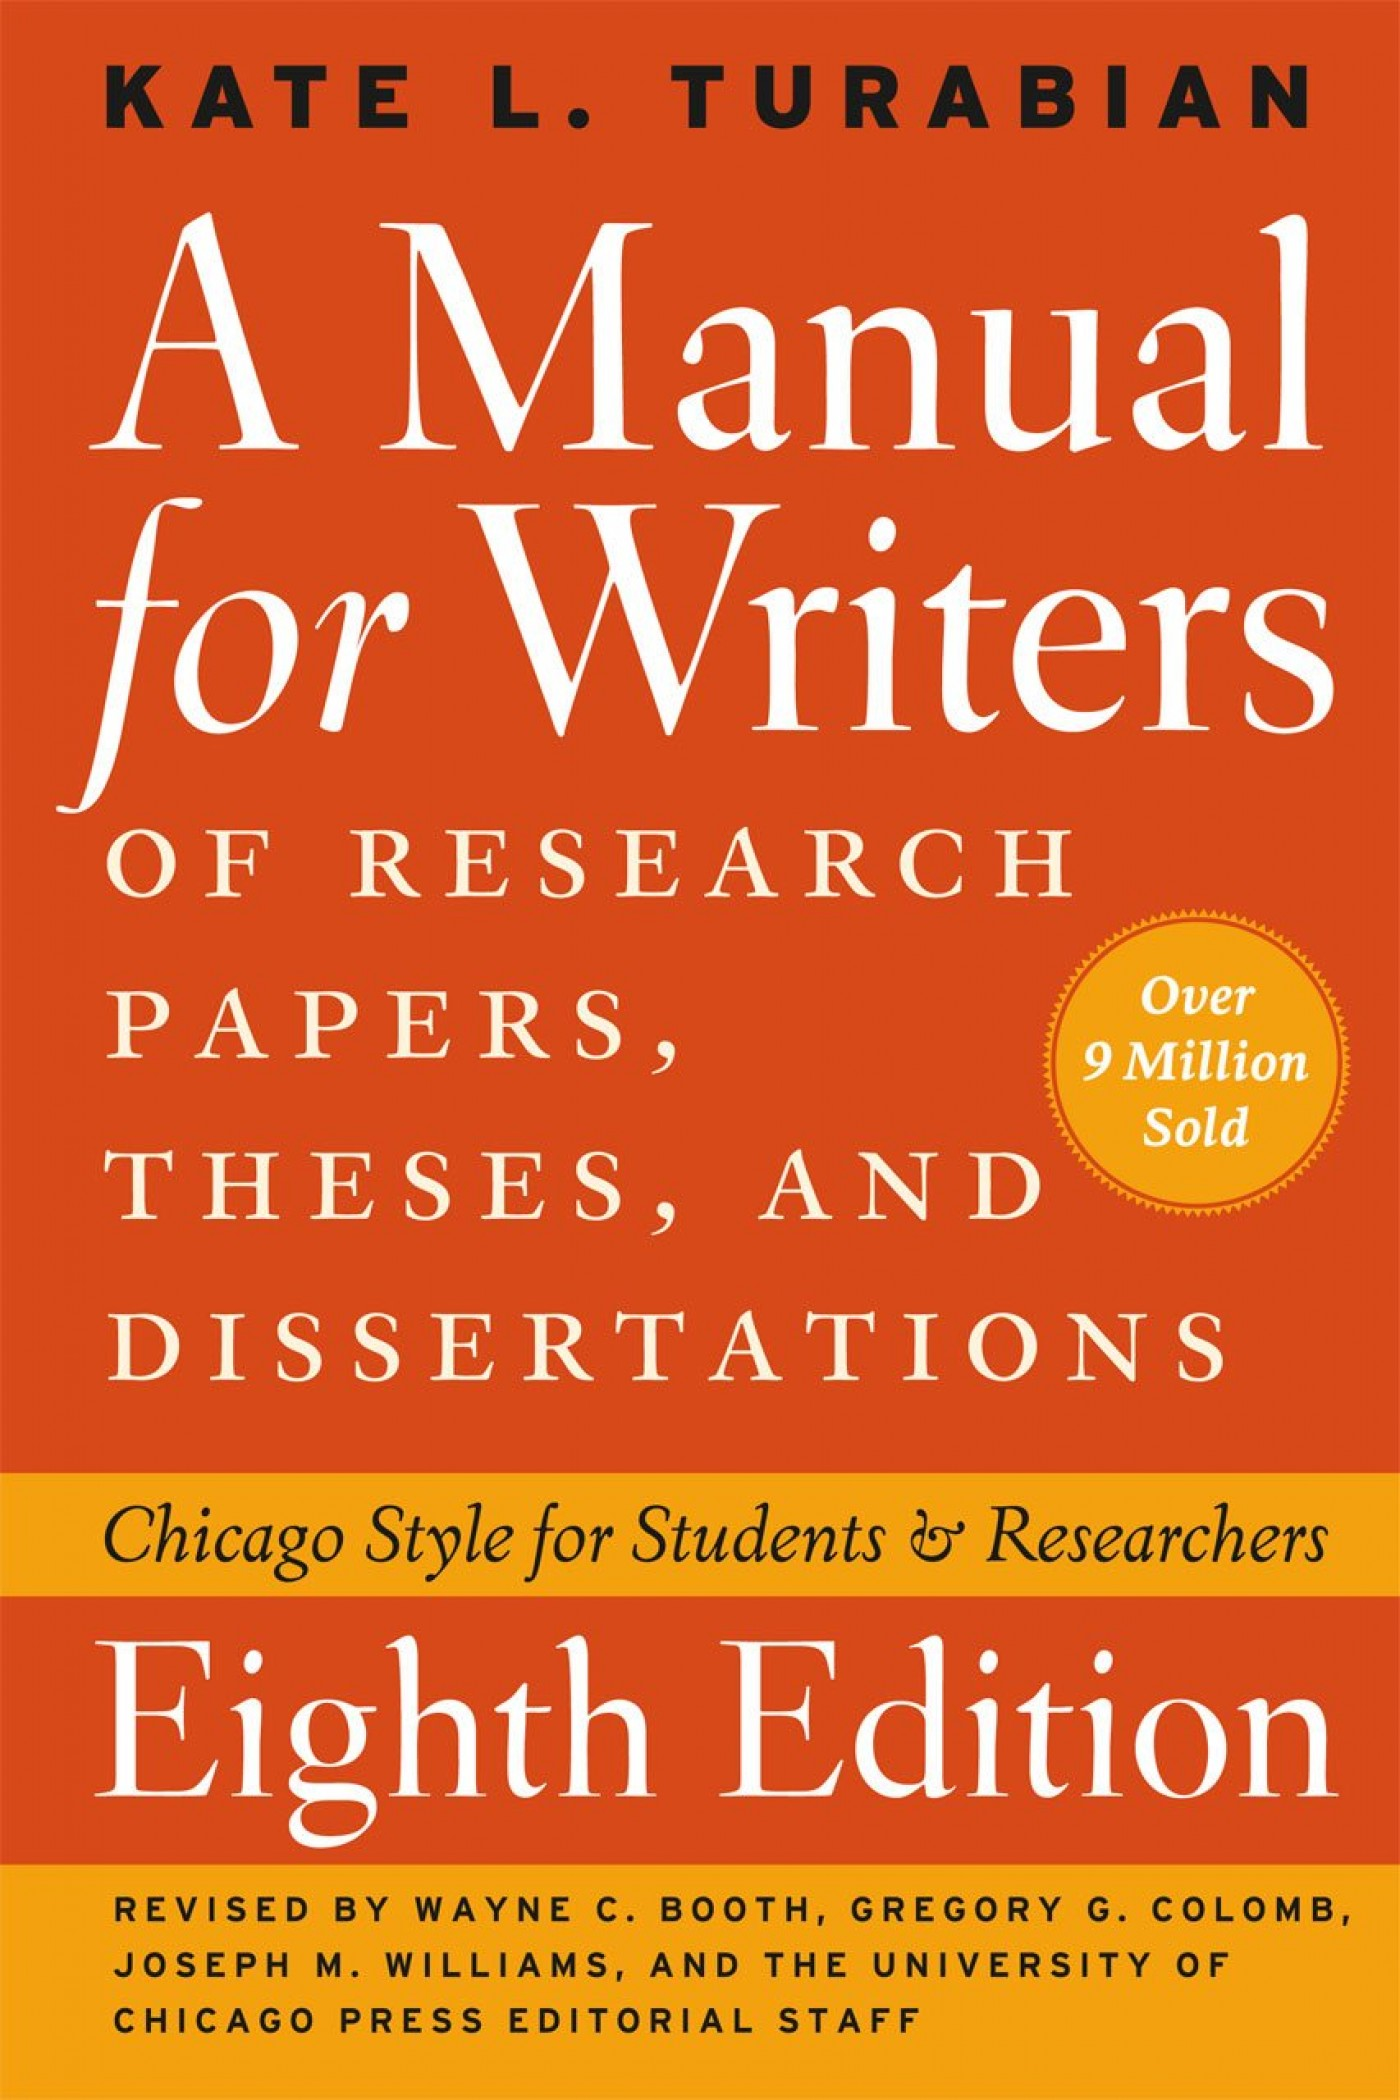 013 Manual For Writers Of Research Papers Theses And Dissertations Ebook Paper 71zqdmudhcl  Sl1280 Unbelievable A1400